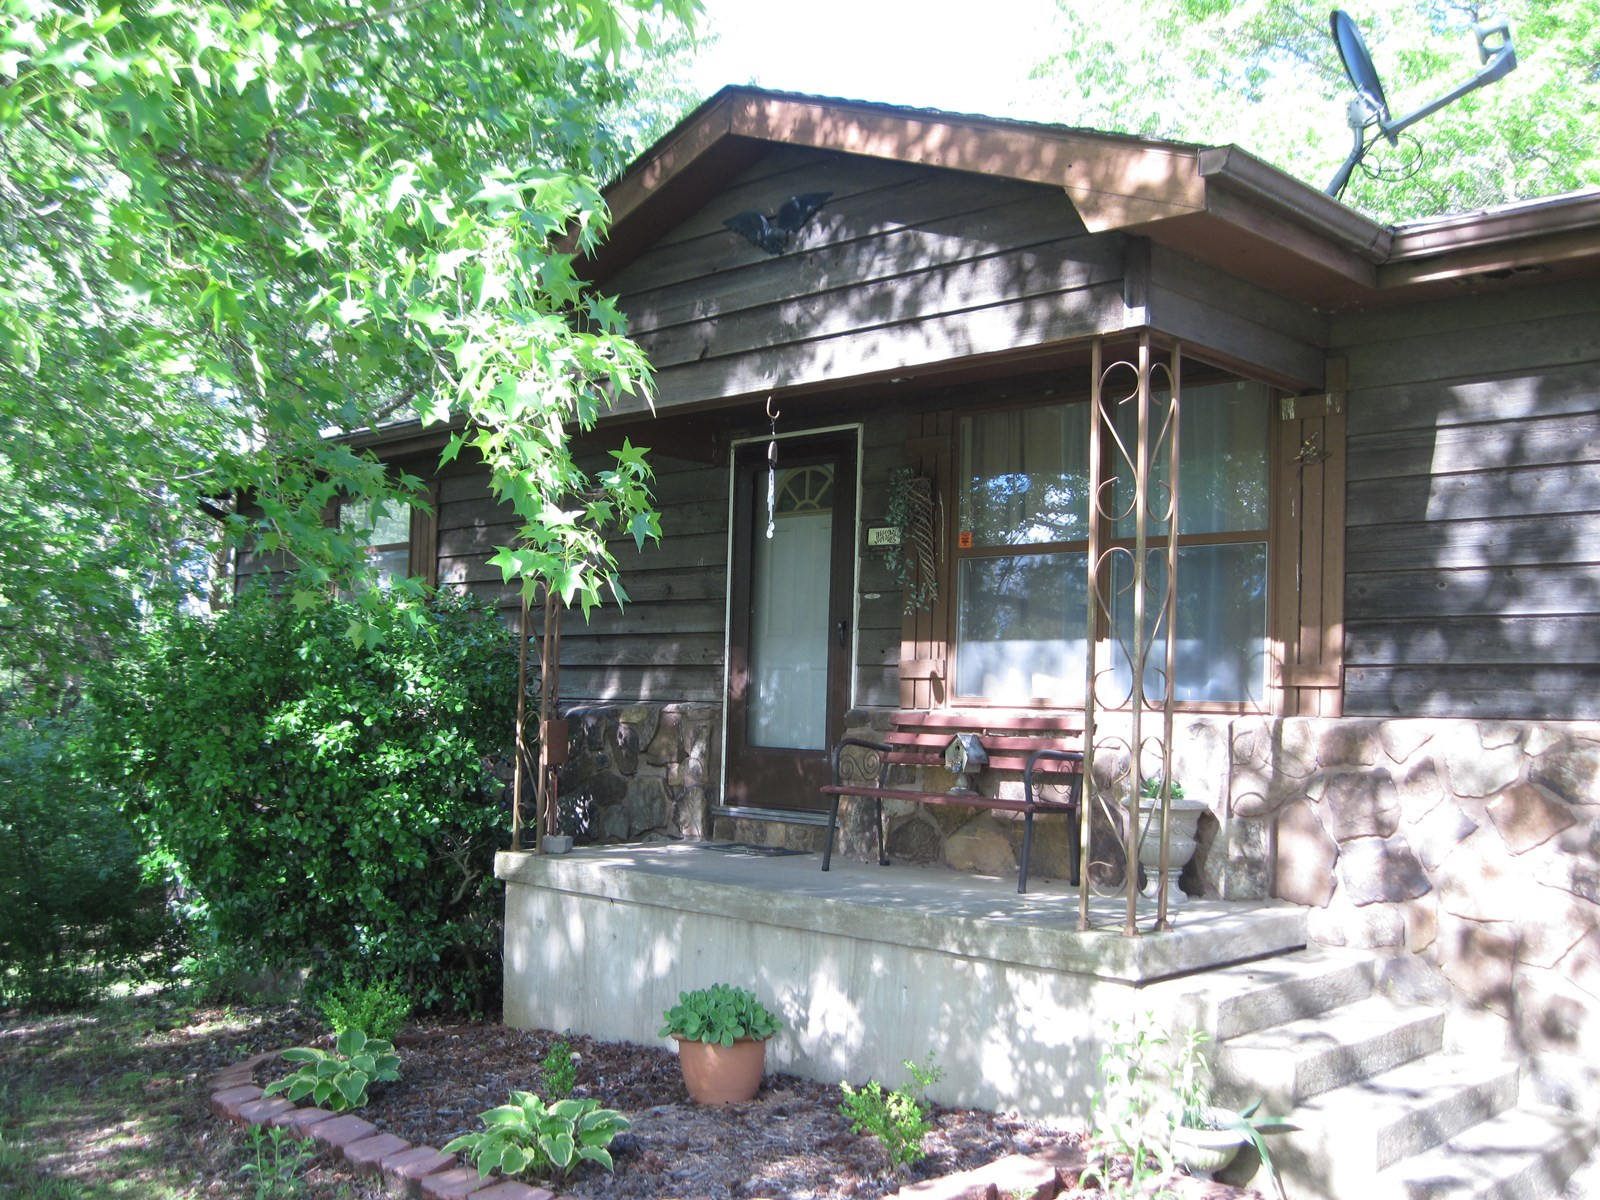 Nestled in the trees features this 3 bedroom, 2 bath home on